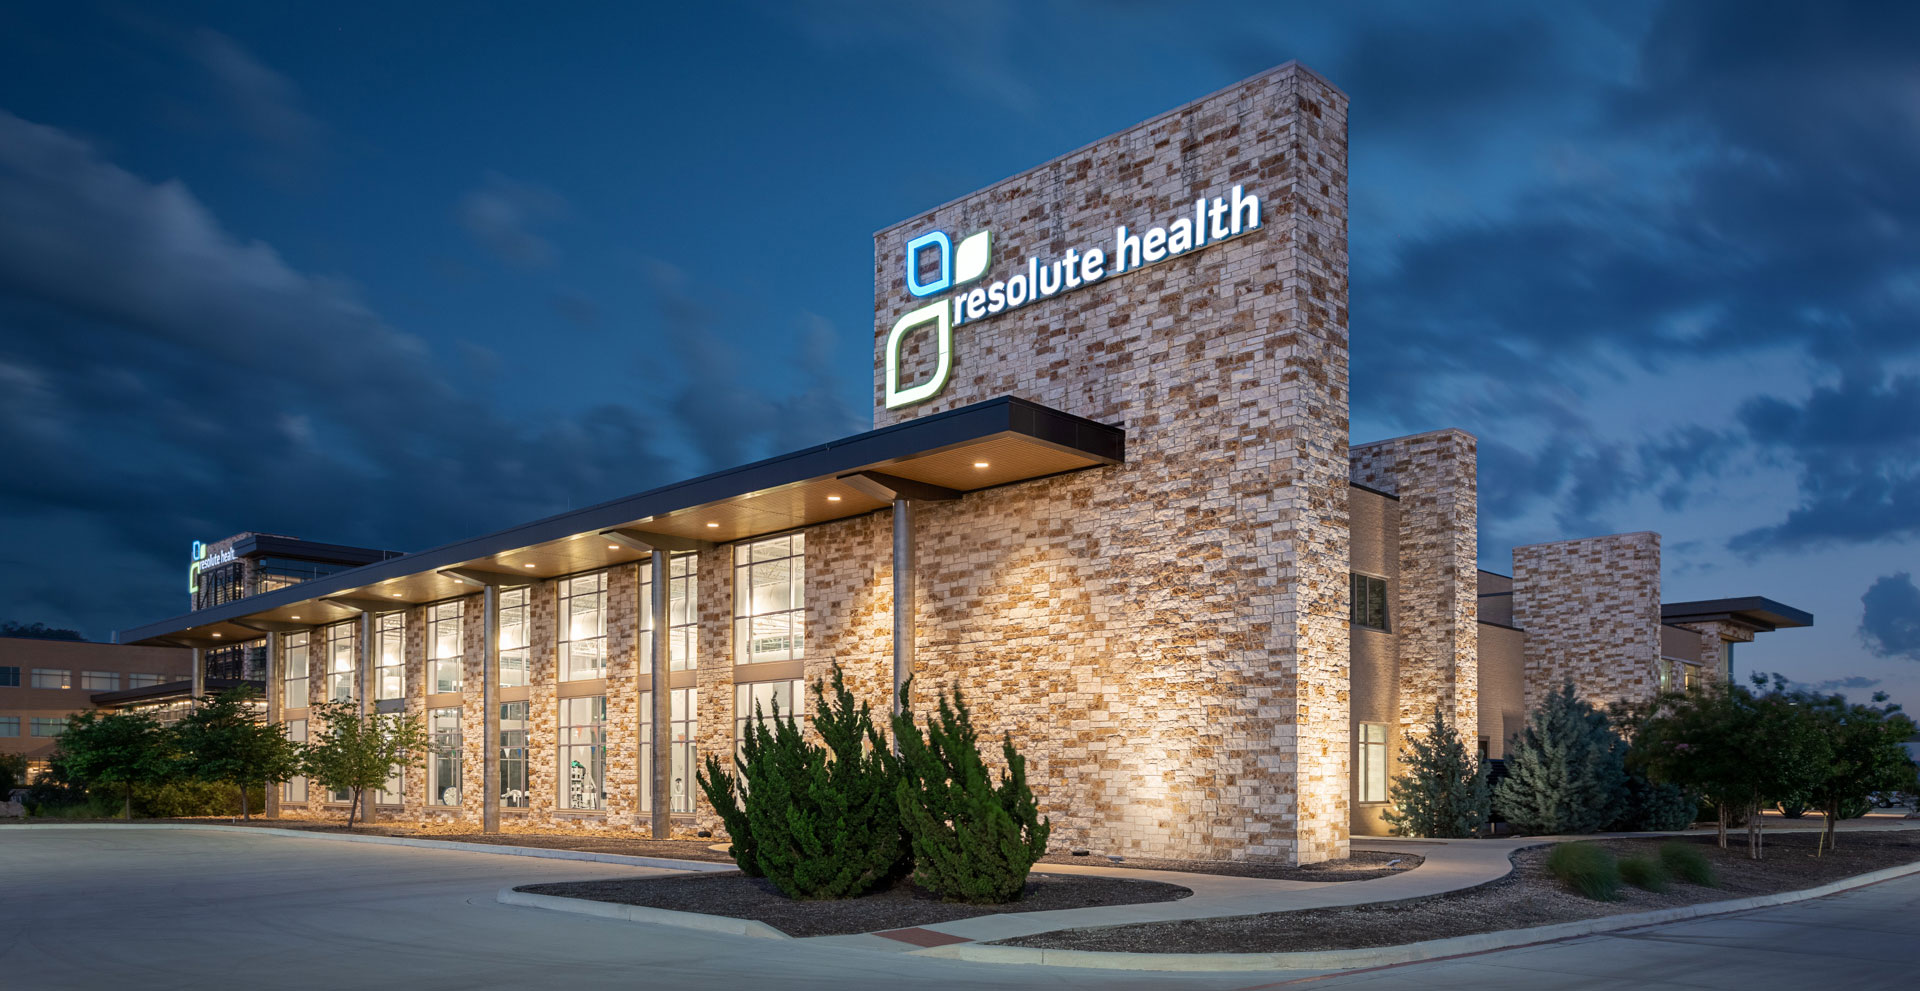 resolute health medical office building